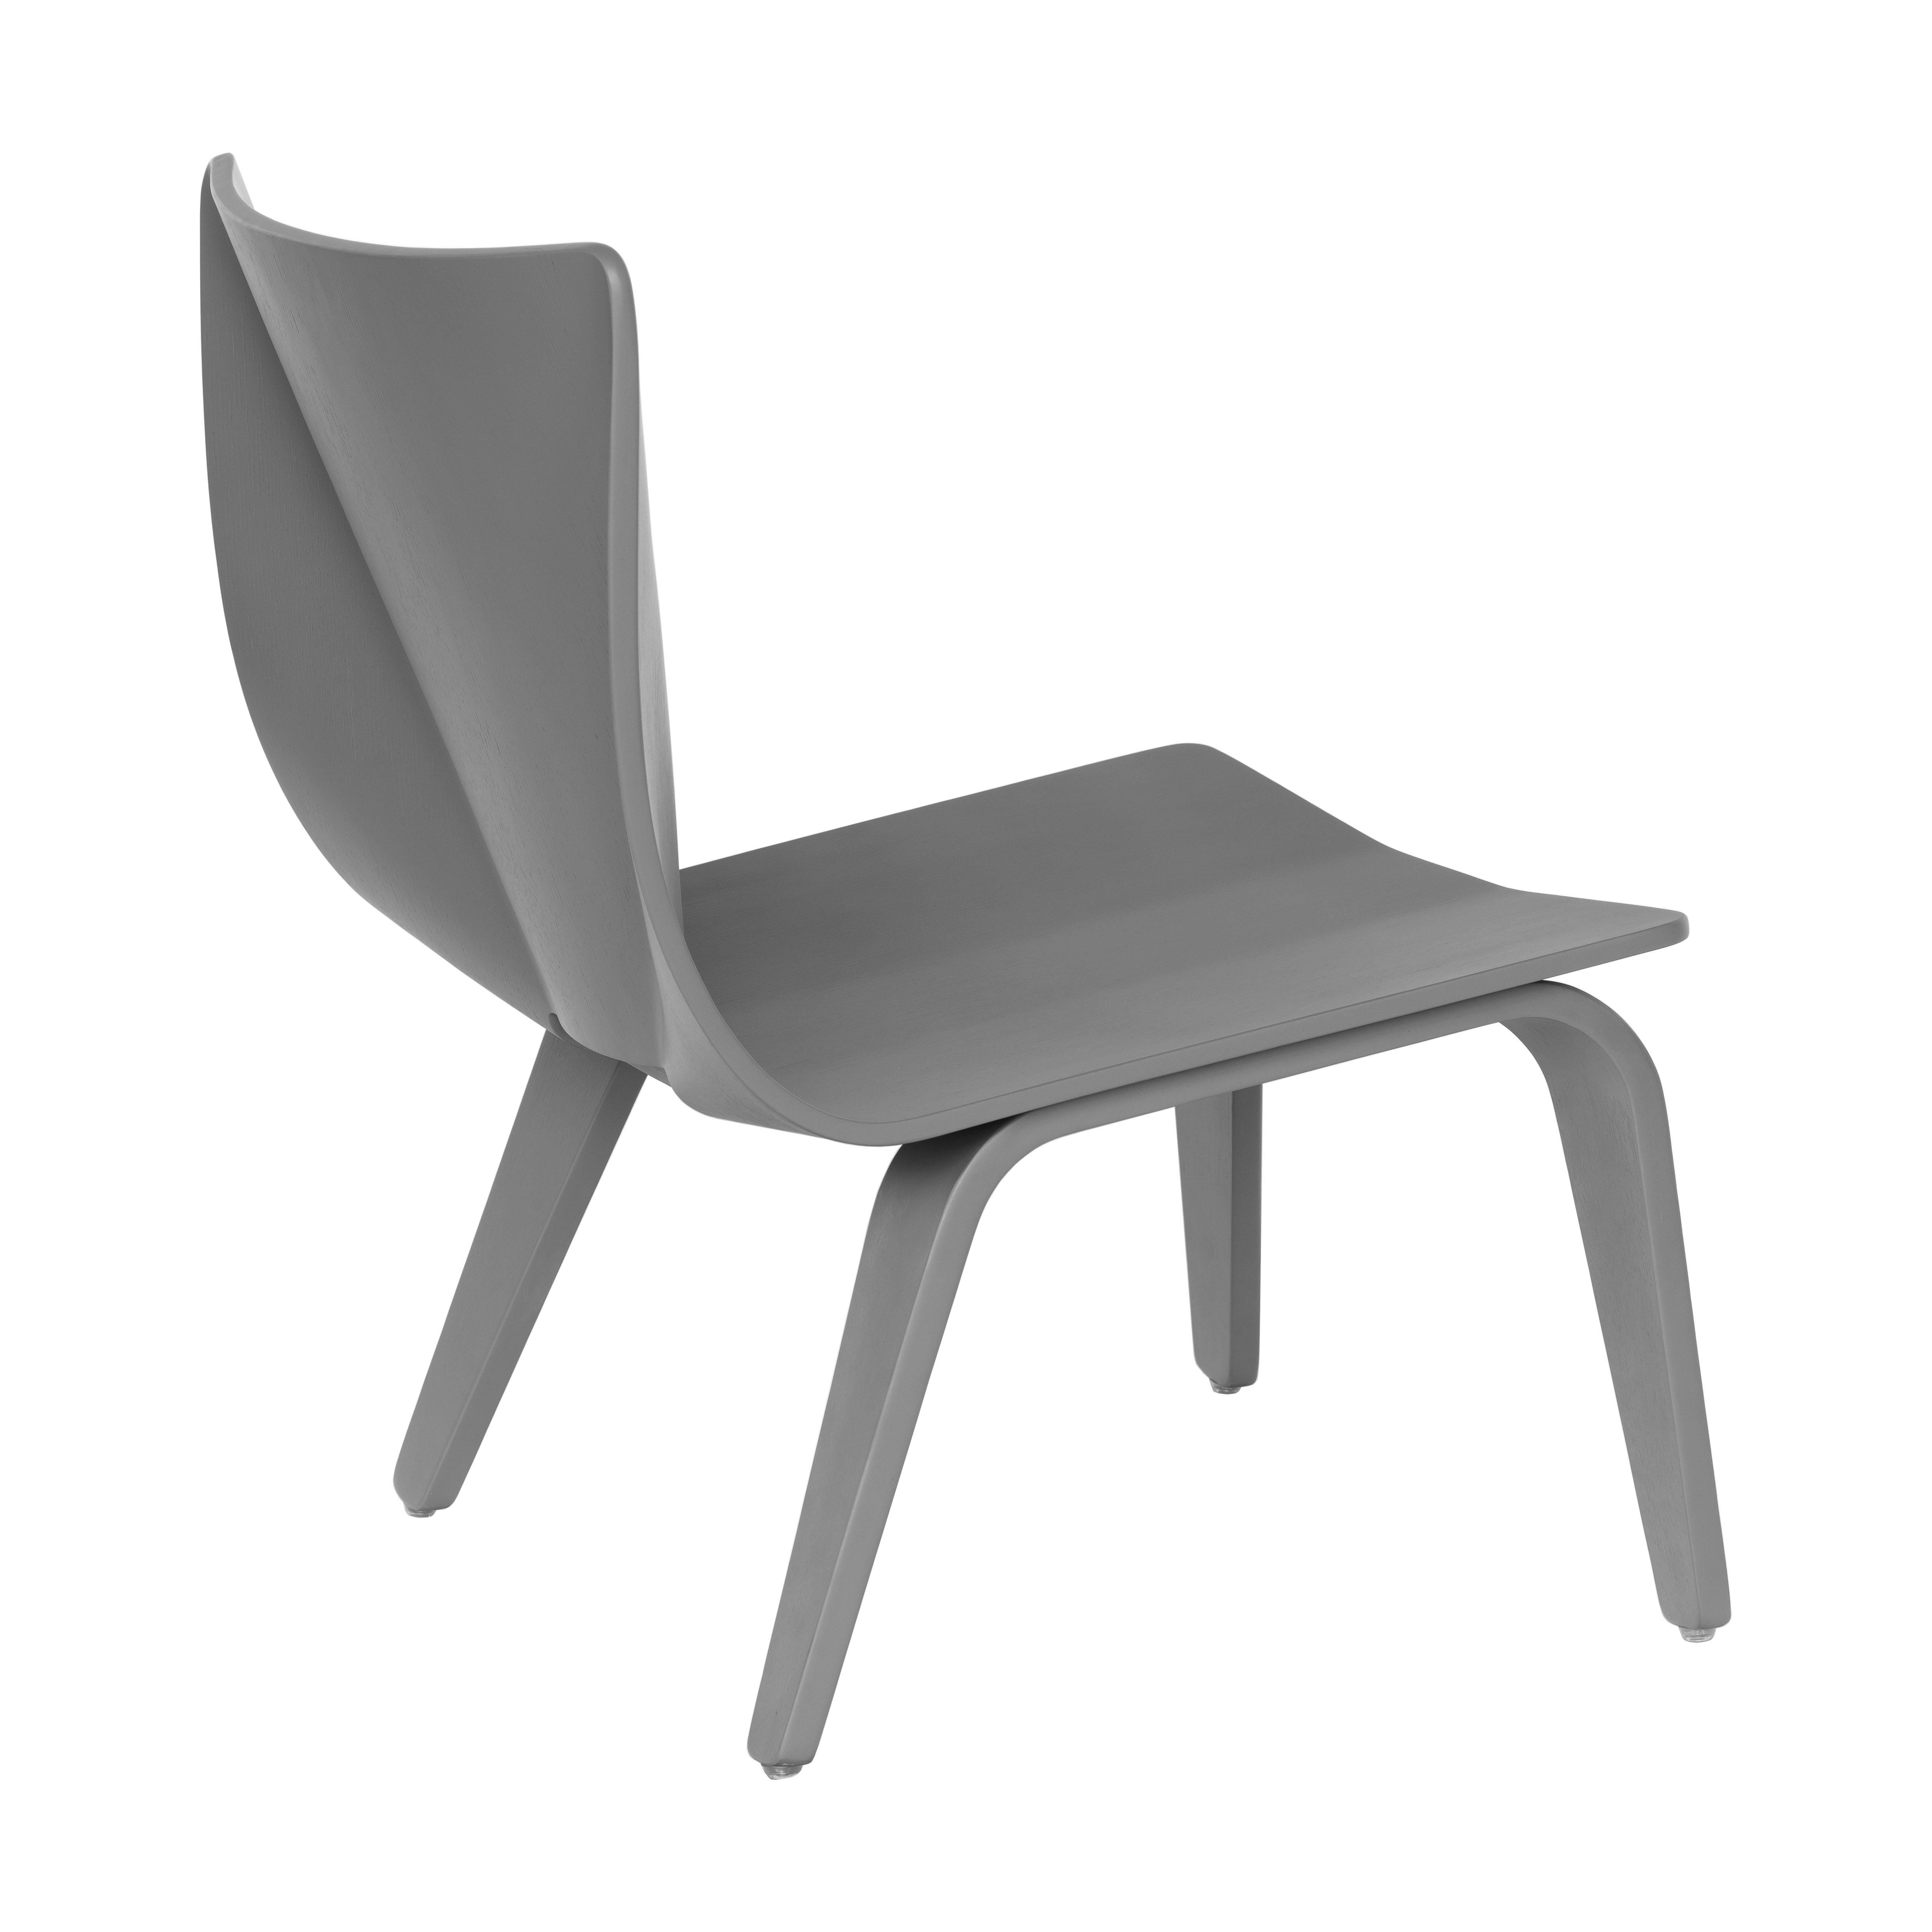 V Lounge Chair in grey